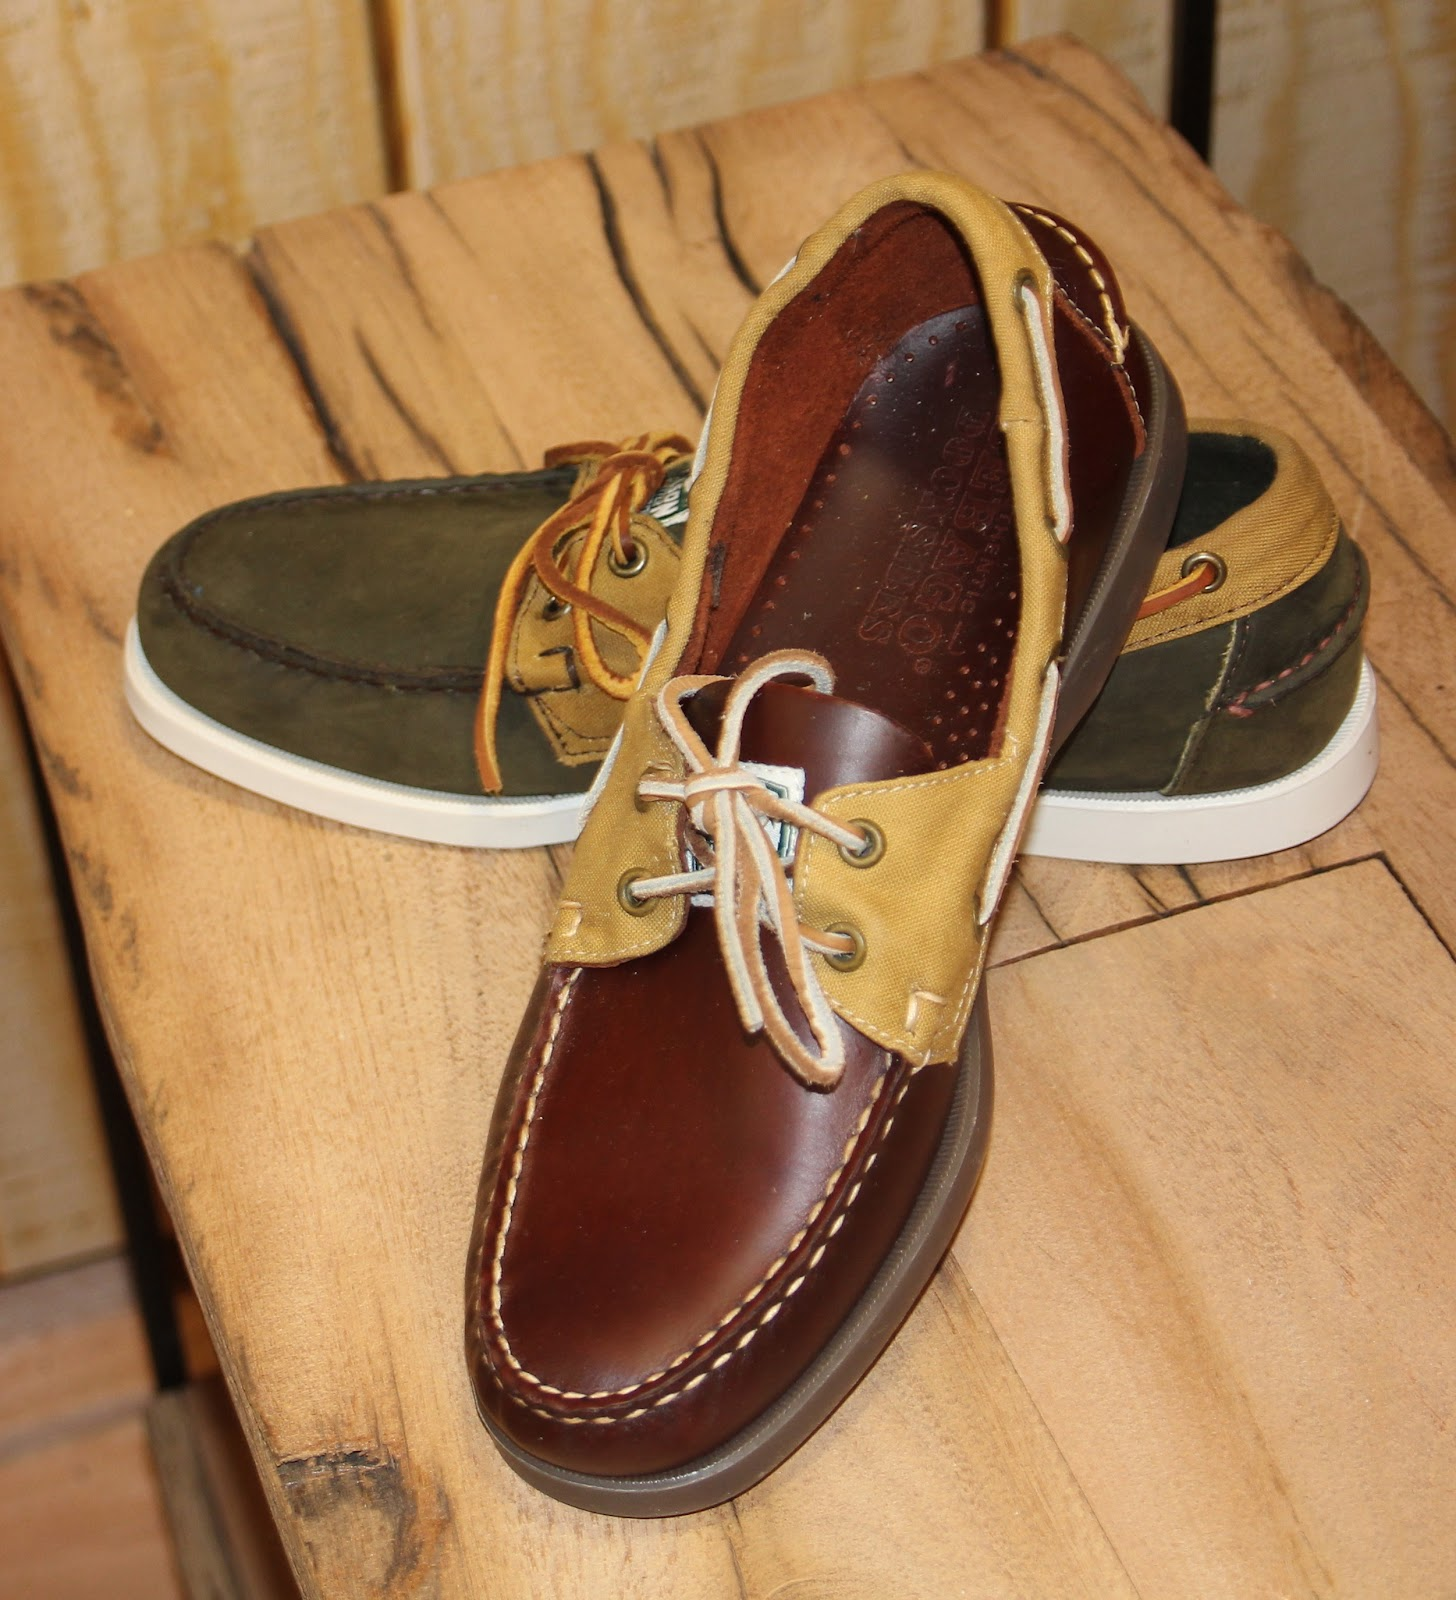 434f15413a7a0 SEBAGO FALL 2012 Footwear Men's/Women's